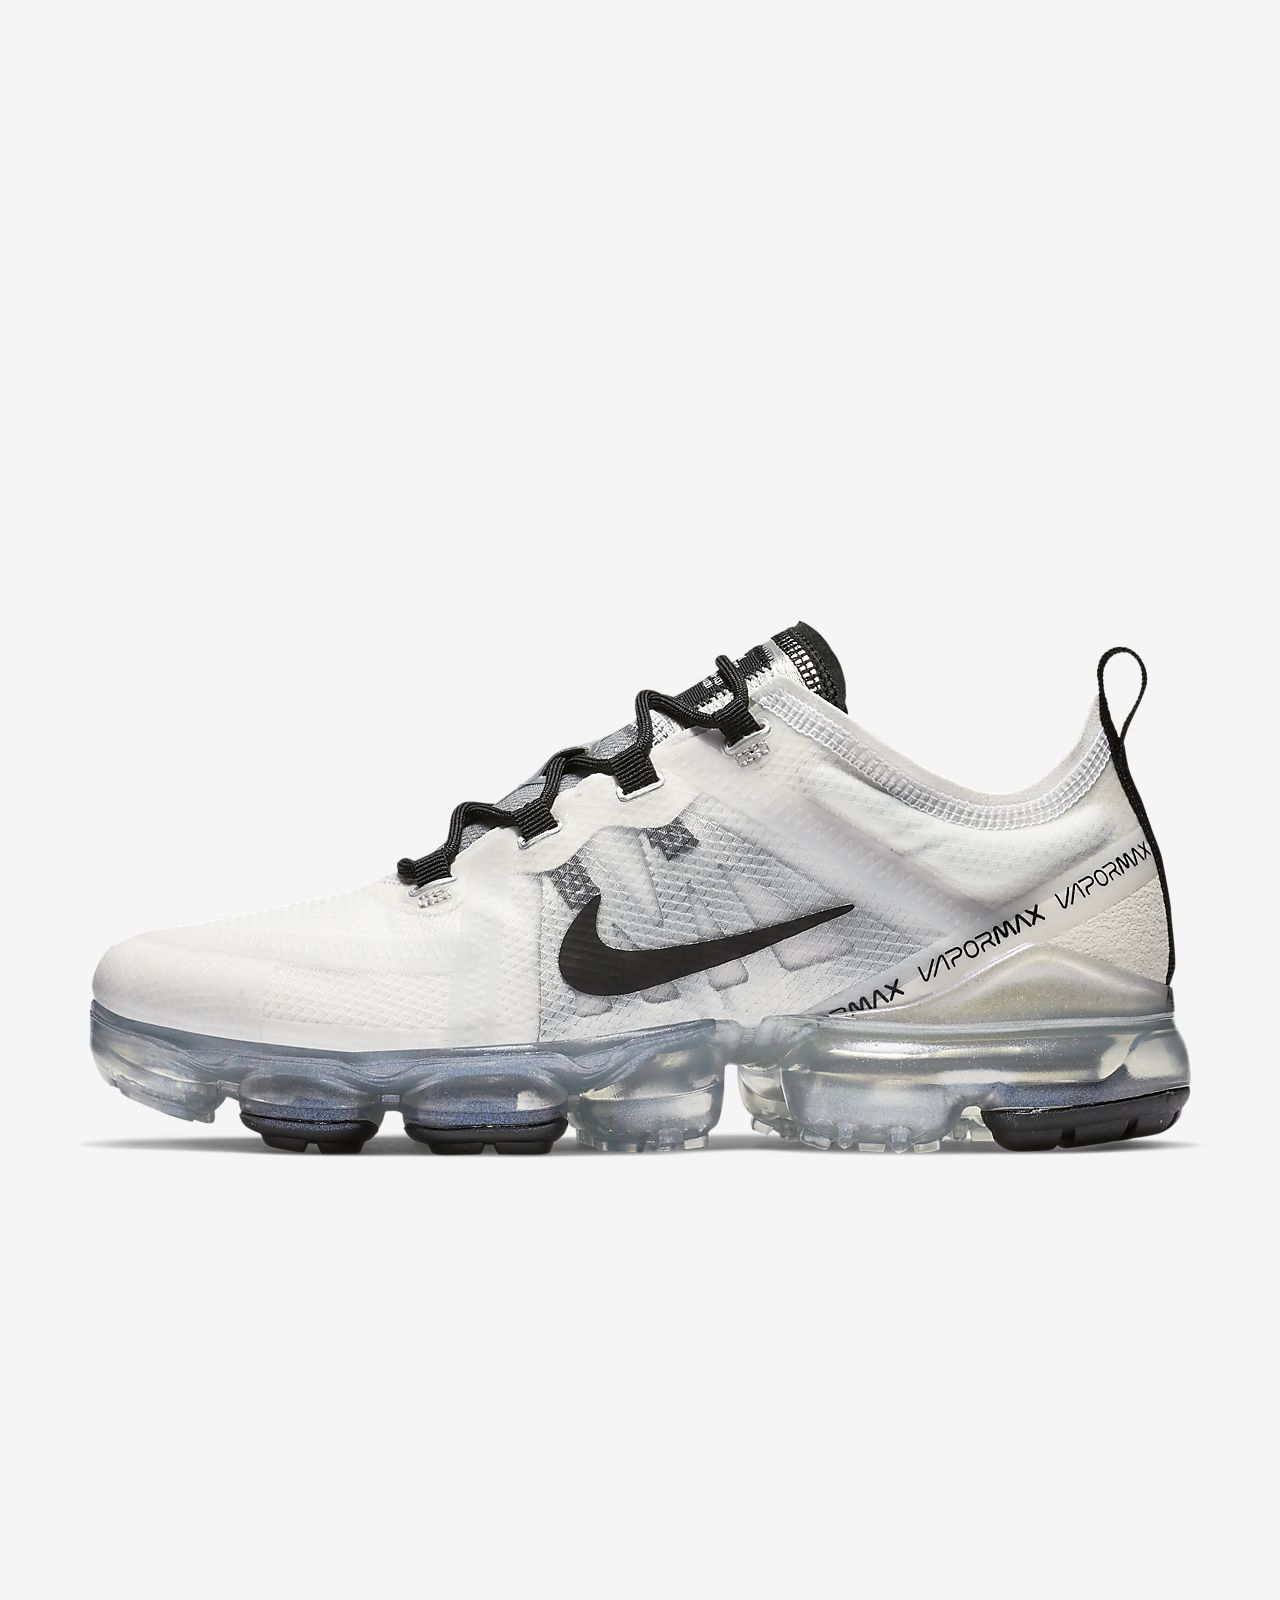 5f6ce6d3d67e0 Men s and Women s Nike Air VaporMax 2019 Black White Shoes. Nike Air  VaporMax 2019